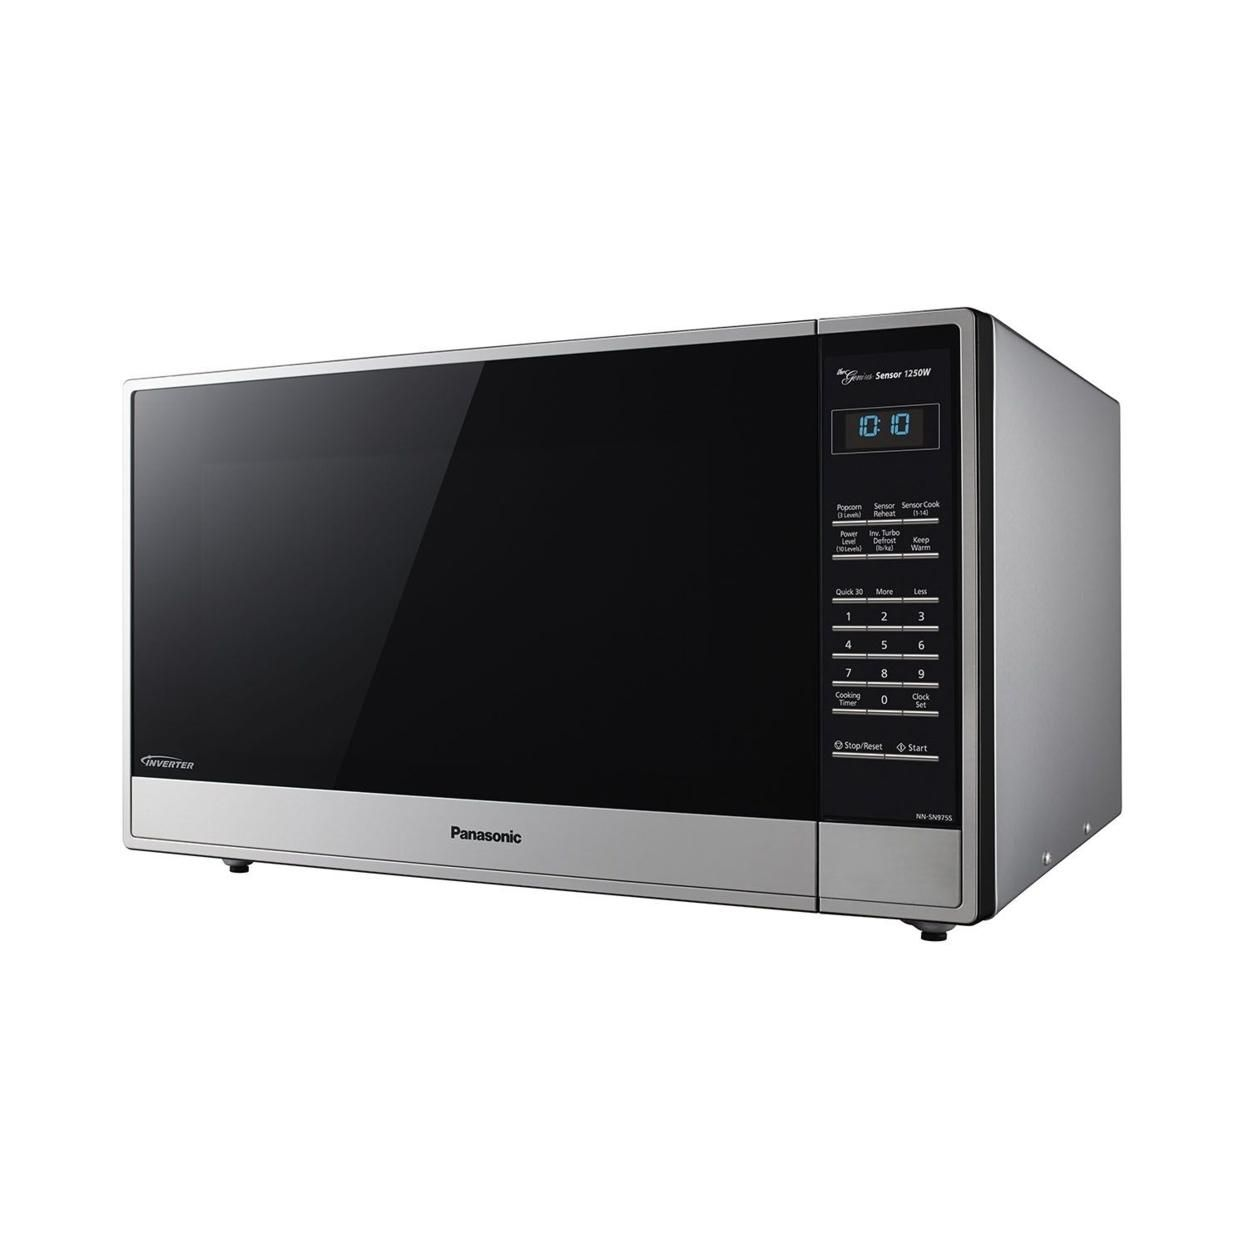 Panasonic 2.2 cu. ft. Stainless-Steel Microwave Oven with Inverter Technology